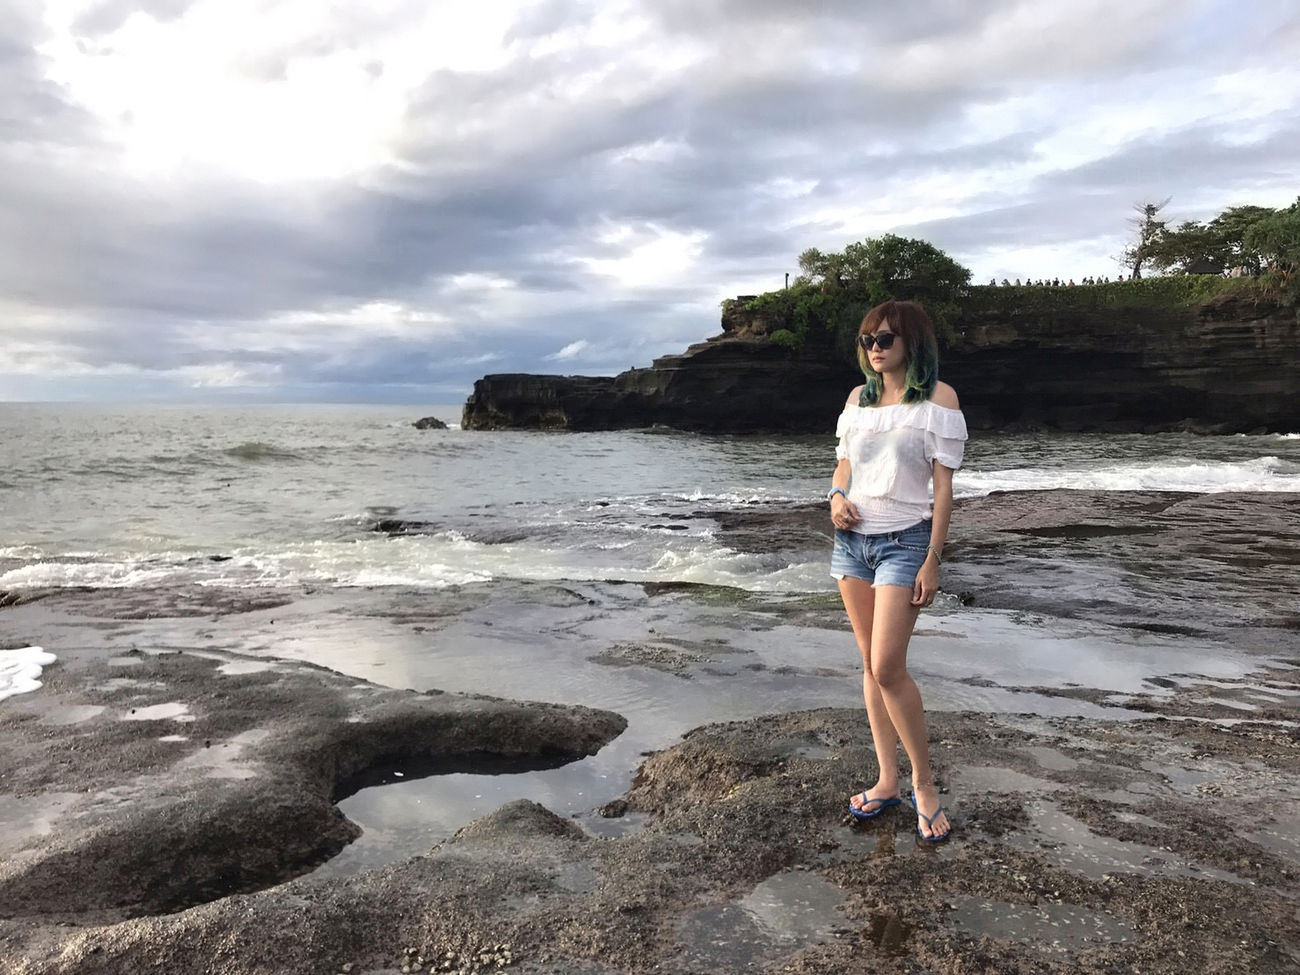 💙🌊 Life Is A Beach 🌊💙 Travel Tanah Lot Wave Bali Bali, Indonesia Scenics Beach Beauty In Nature Cloud - Sky Exceptional Photographs Travel Destinations Landscapes Nature One Person Outdoors People Portrait Sea Young Adult Young Women Tadaa Community That's Me Uniqueness Miles Away Women Around The World